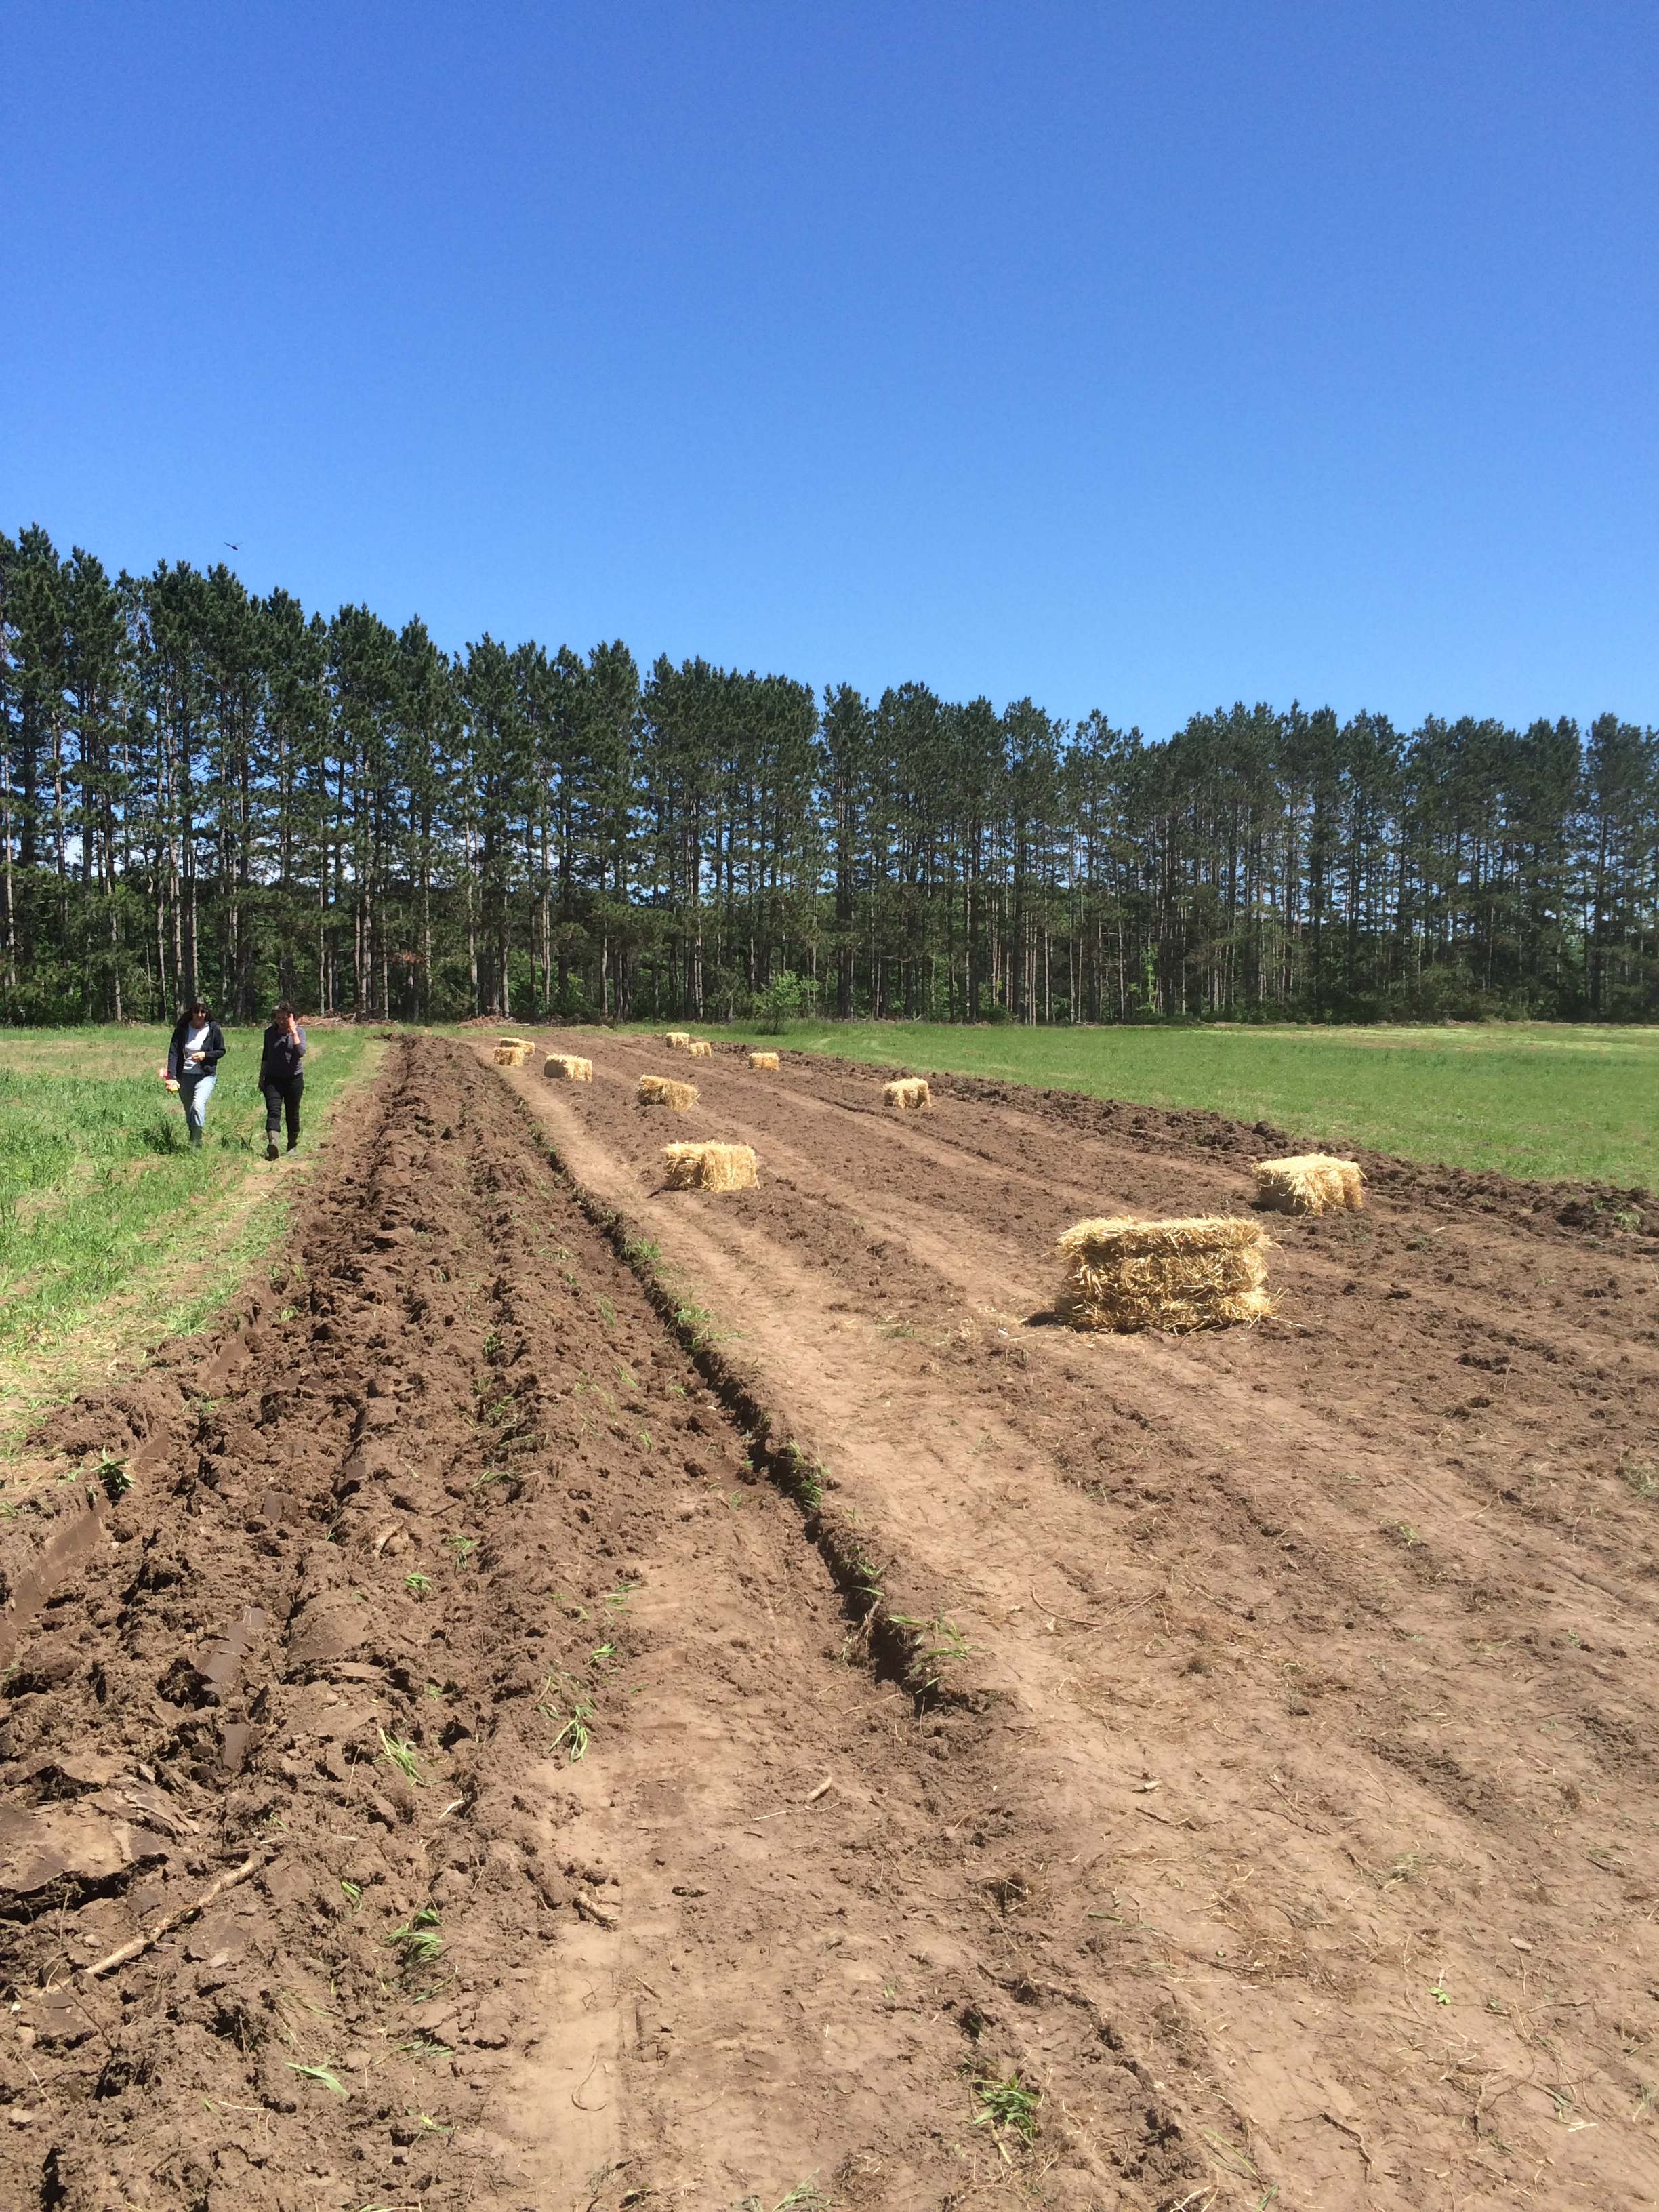 Asparagus is transplanted into the long rows that cut West-East across our North field. Straw bales will be spread over the asparagus to help them retain moisture in the hot summer days.